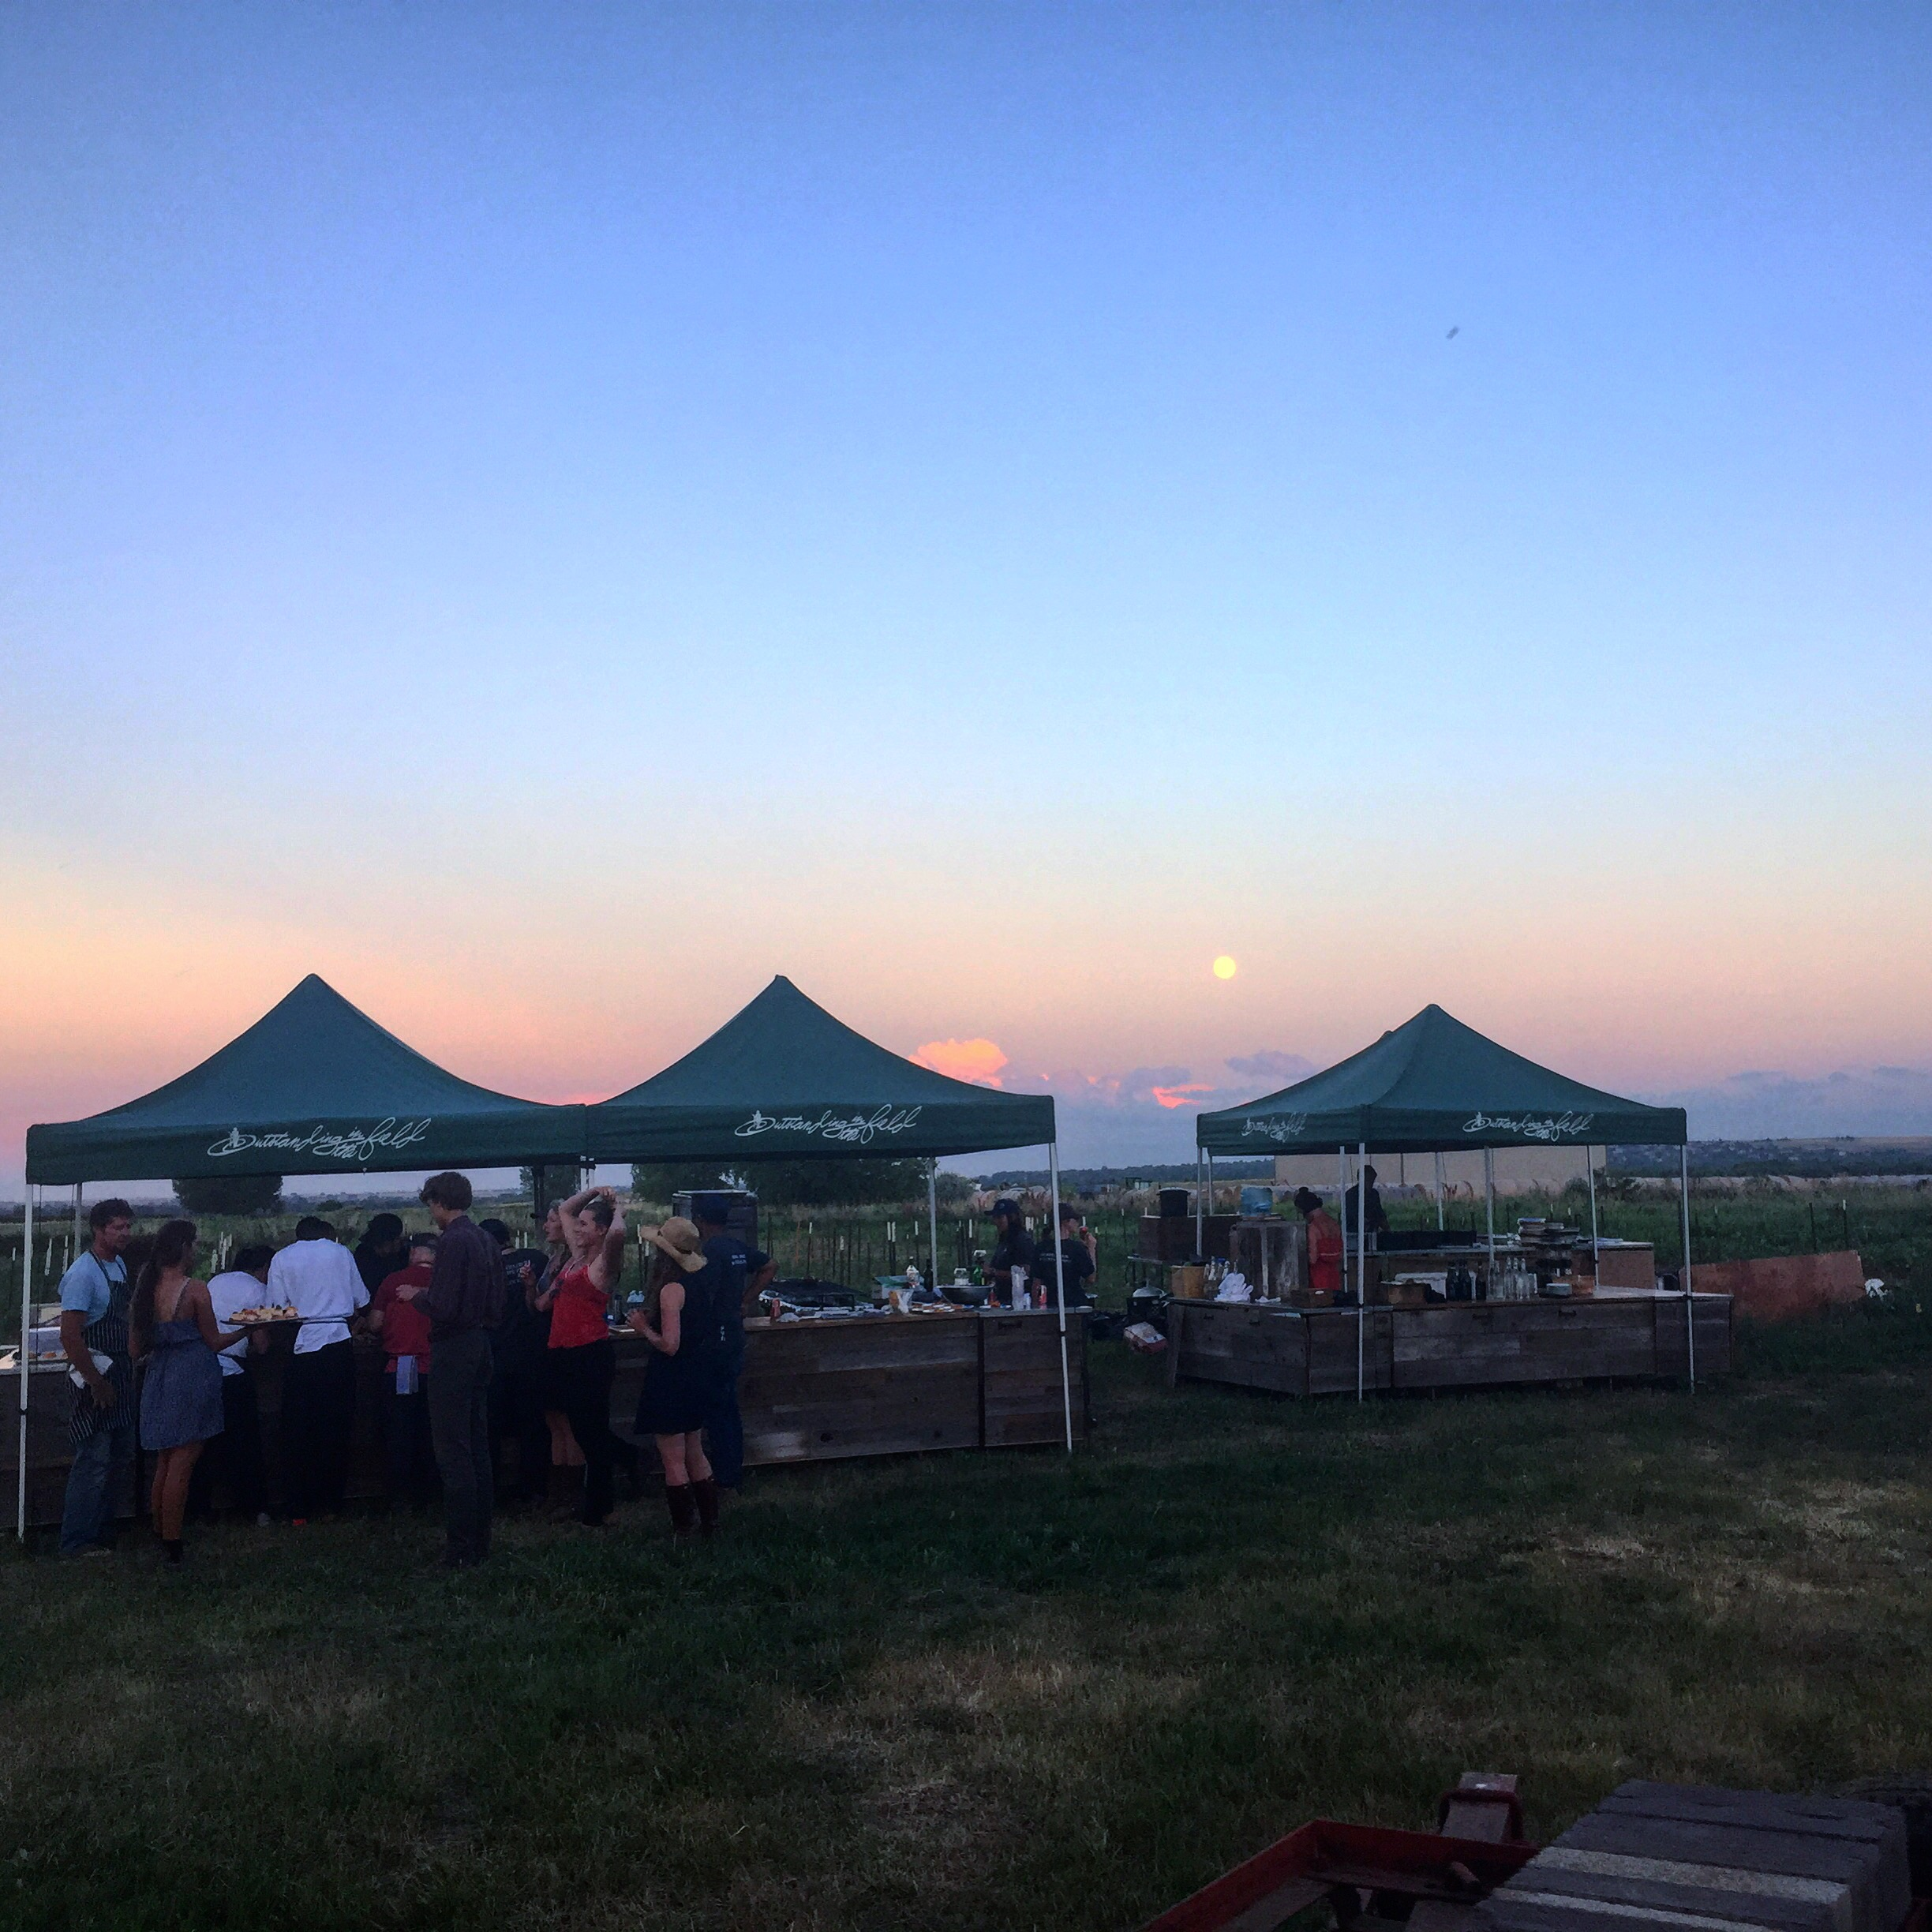 Moon + Mountains at Plowshares Community Farm//Longmont, Colorado